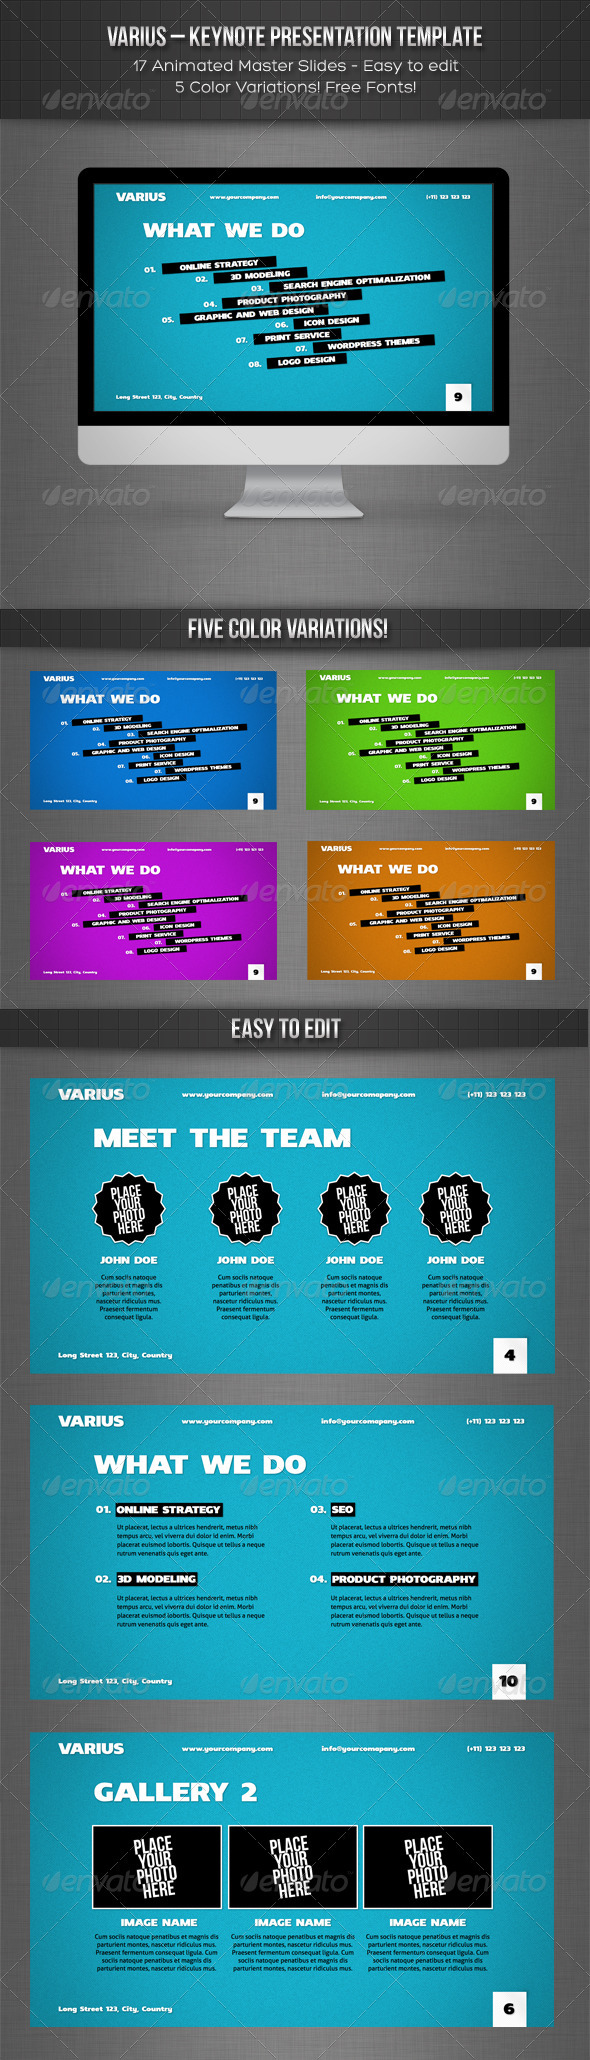 GraphicRiver Varius Keynote Presentation Template 2484197